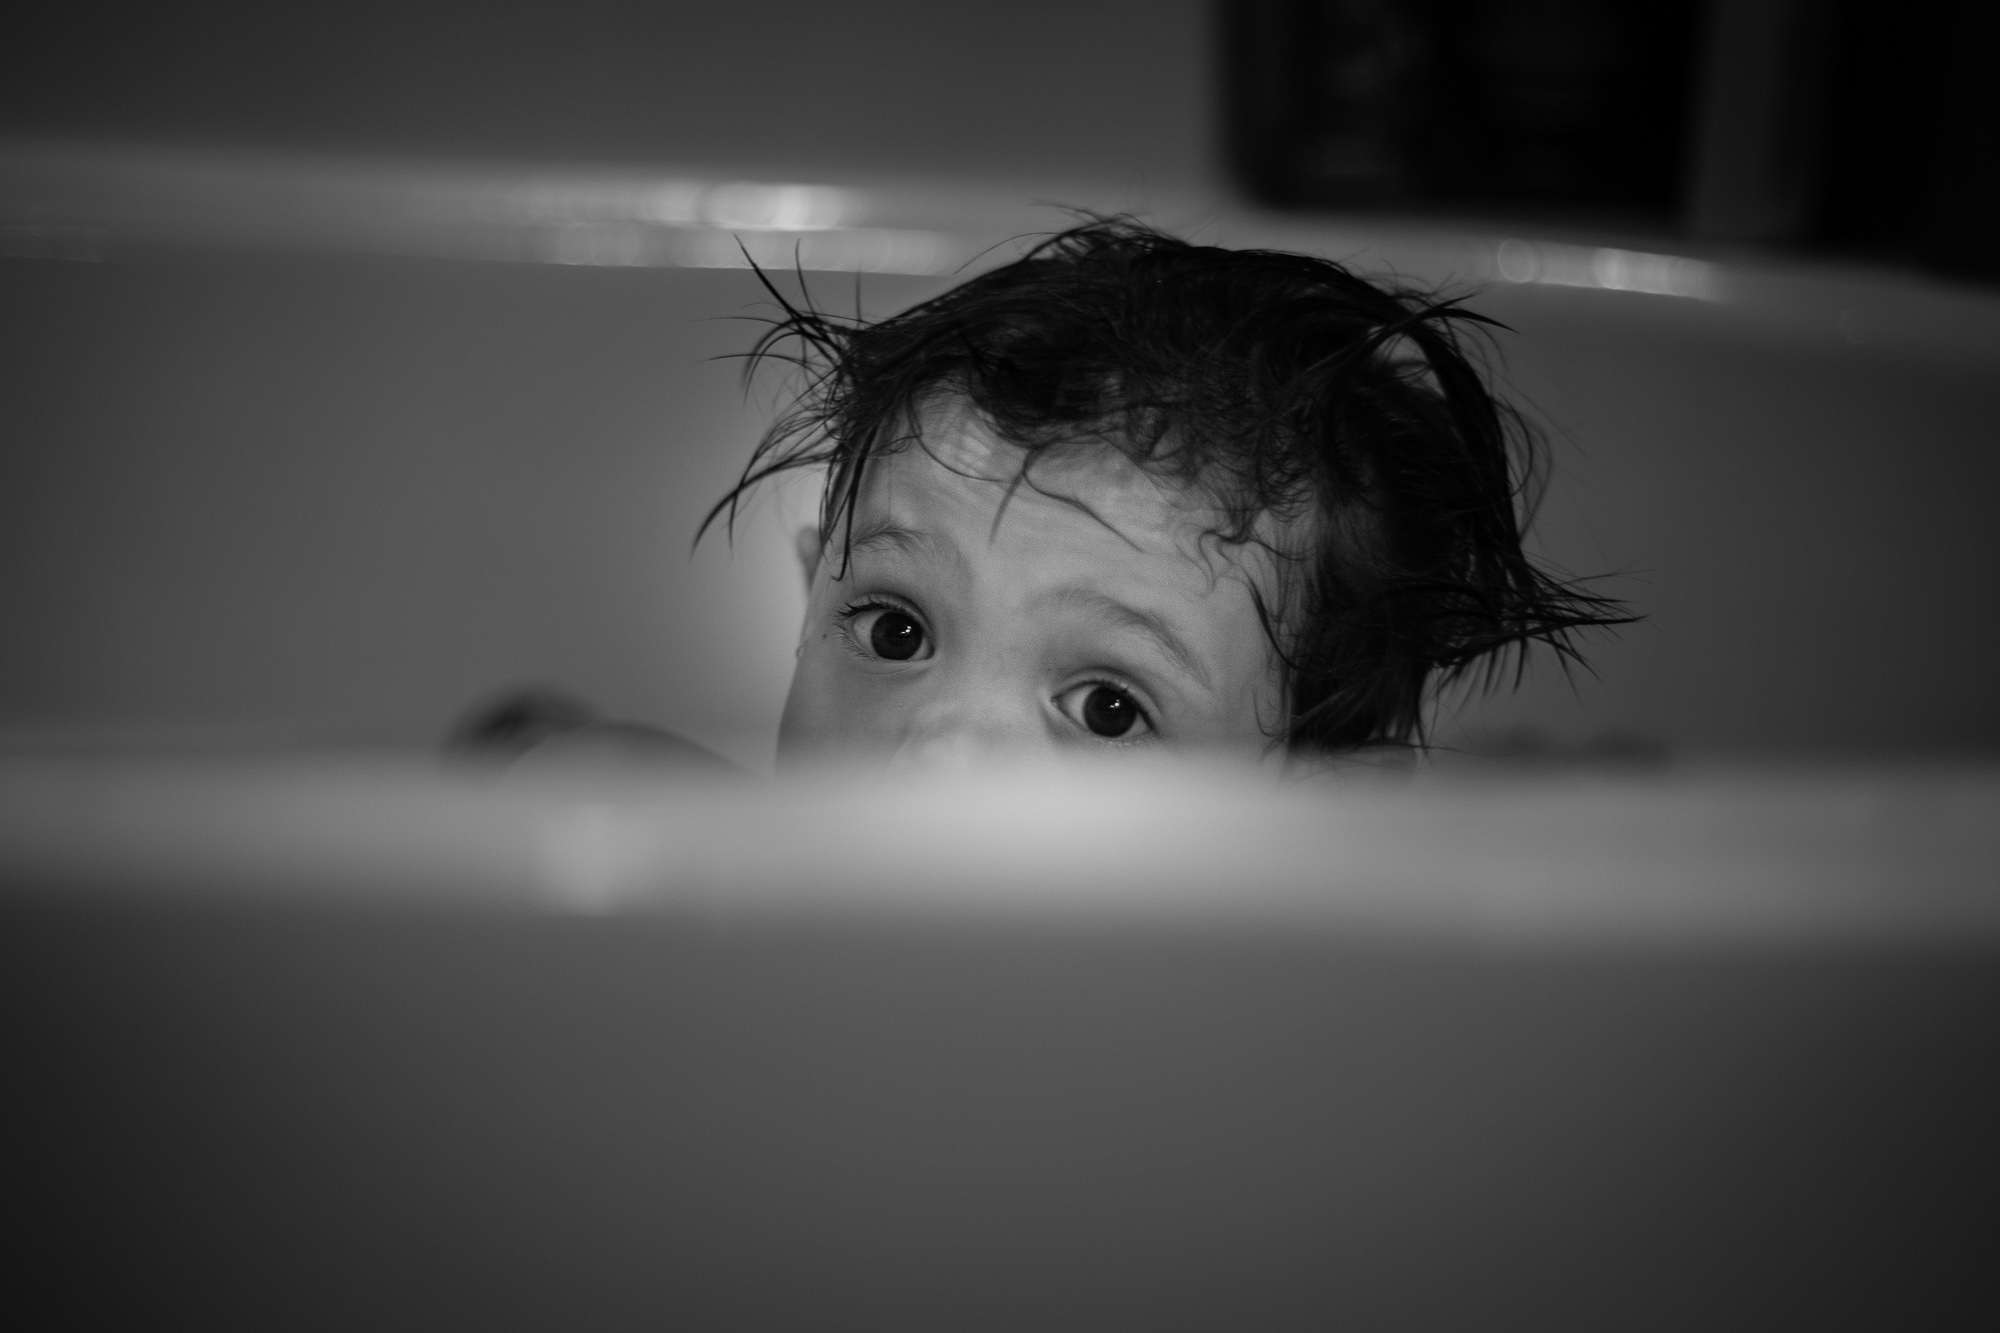 Black and white kid photography